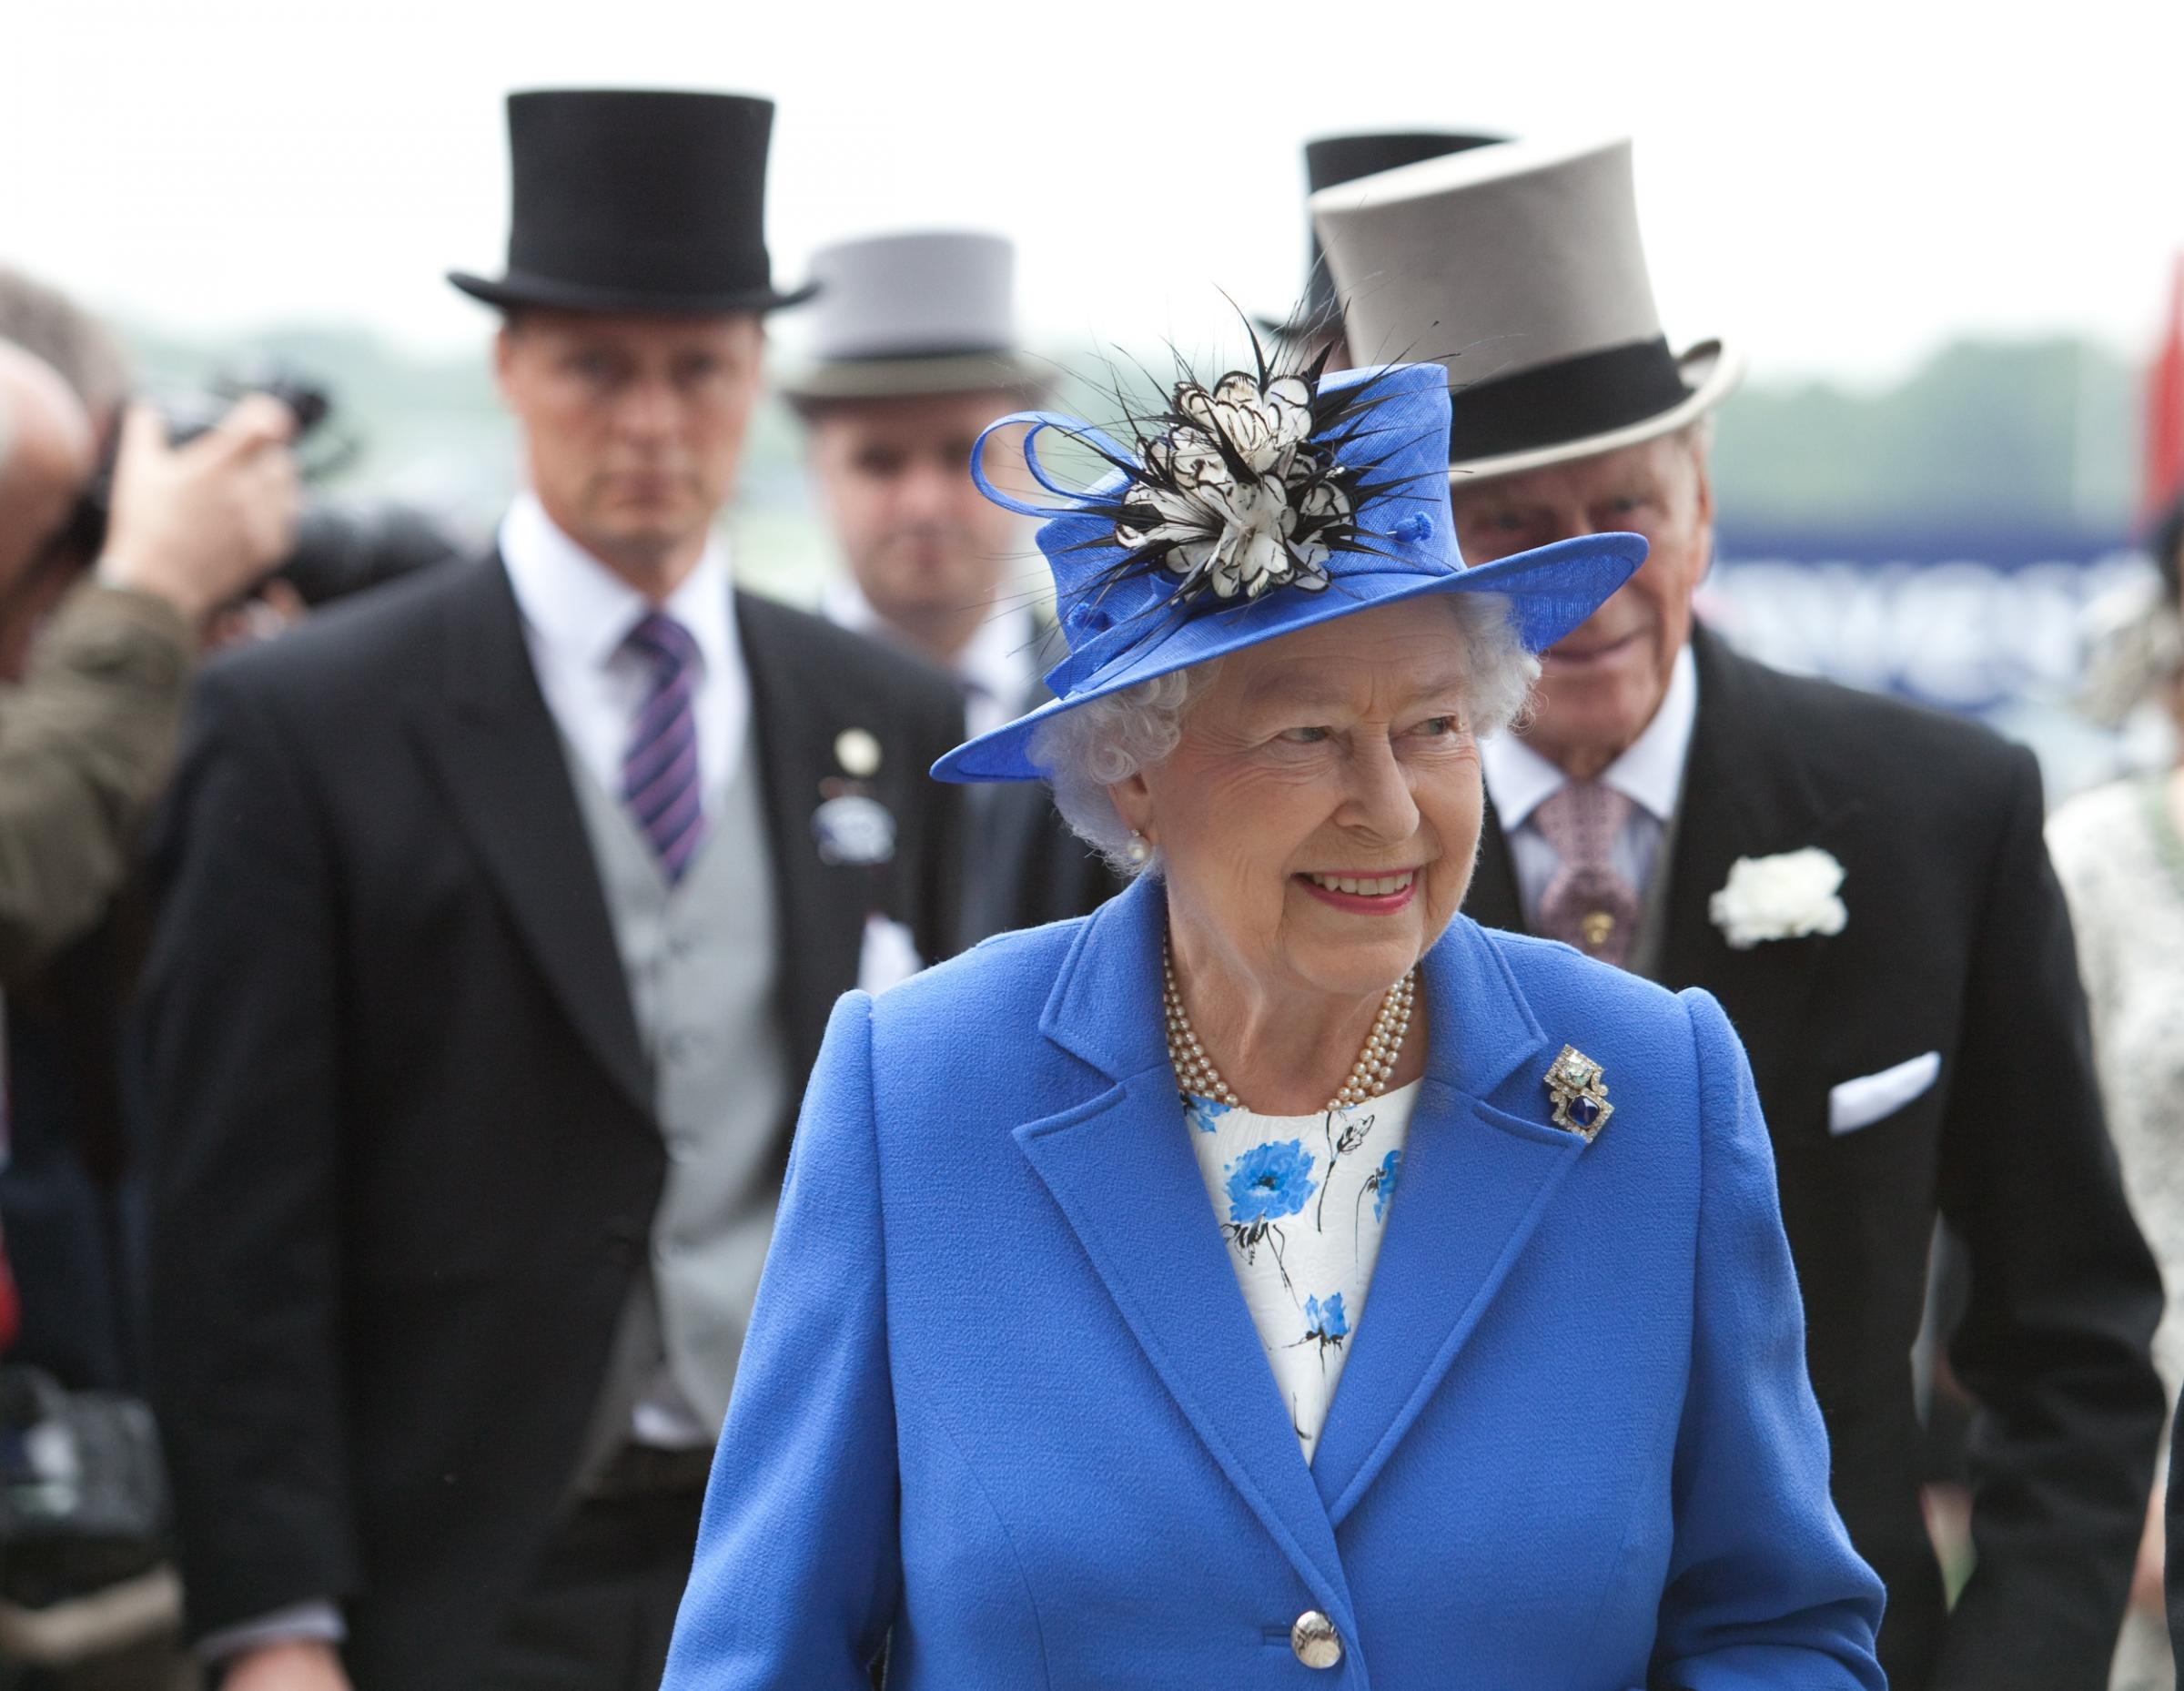 The Queen at the 2012 Epsom Derby